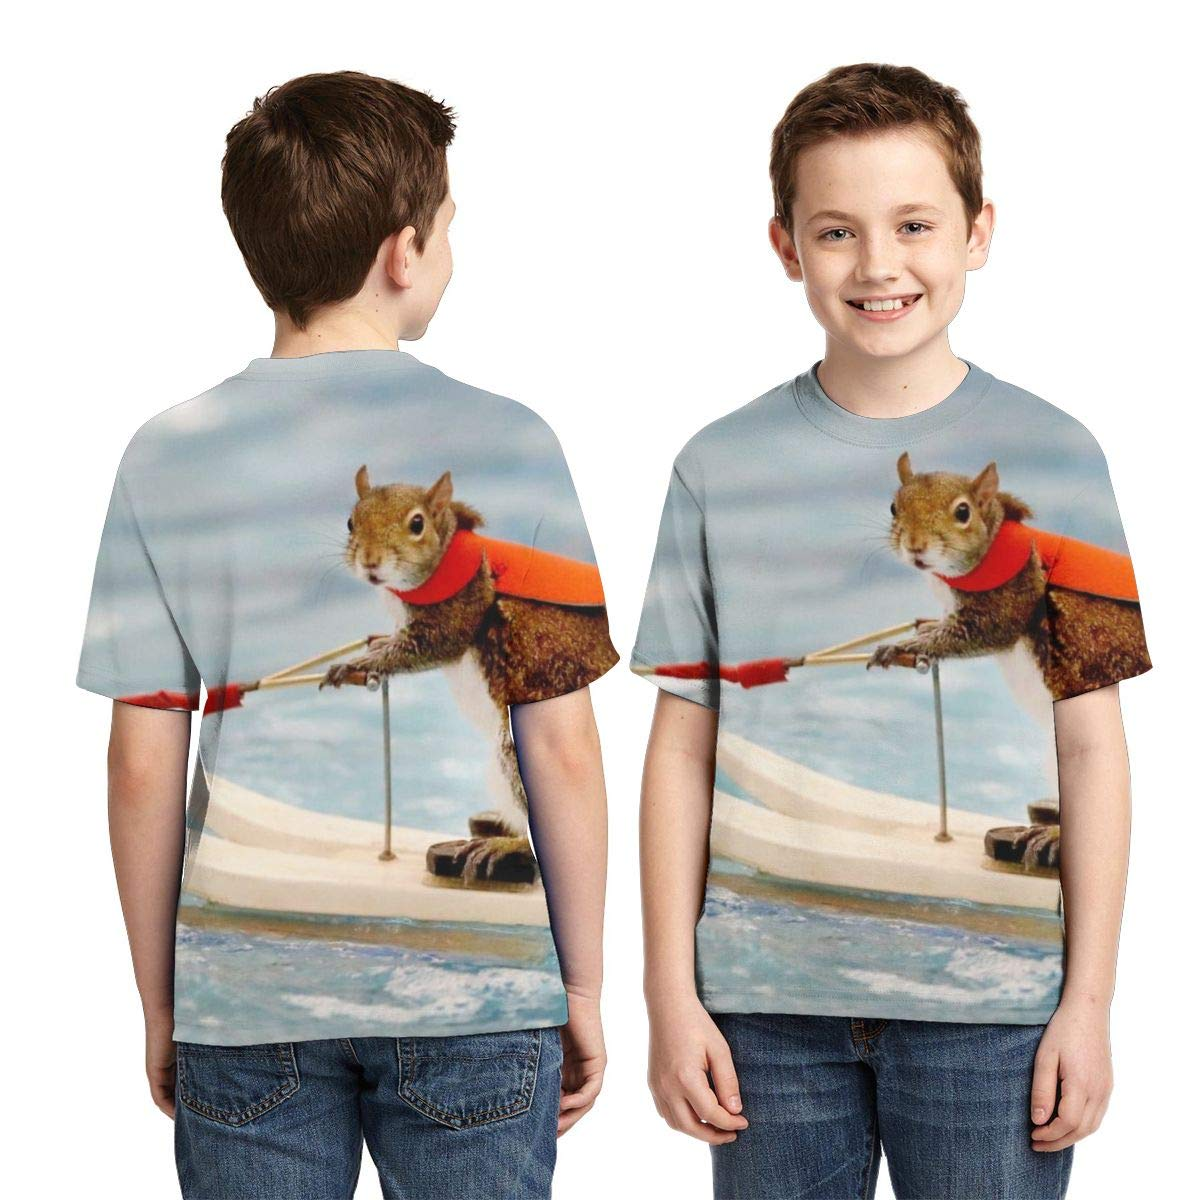 AMODECO Surf Squirrel 3D Printed Tee T-Shirt for Youth Teenager Boys Girls